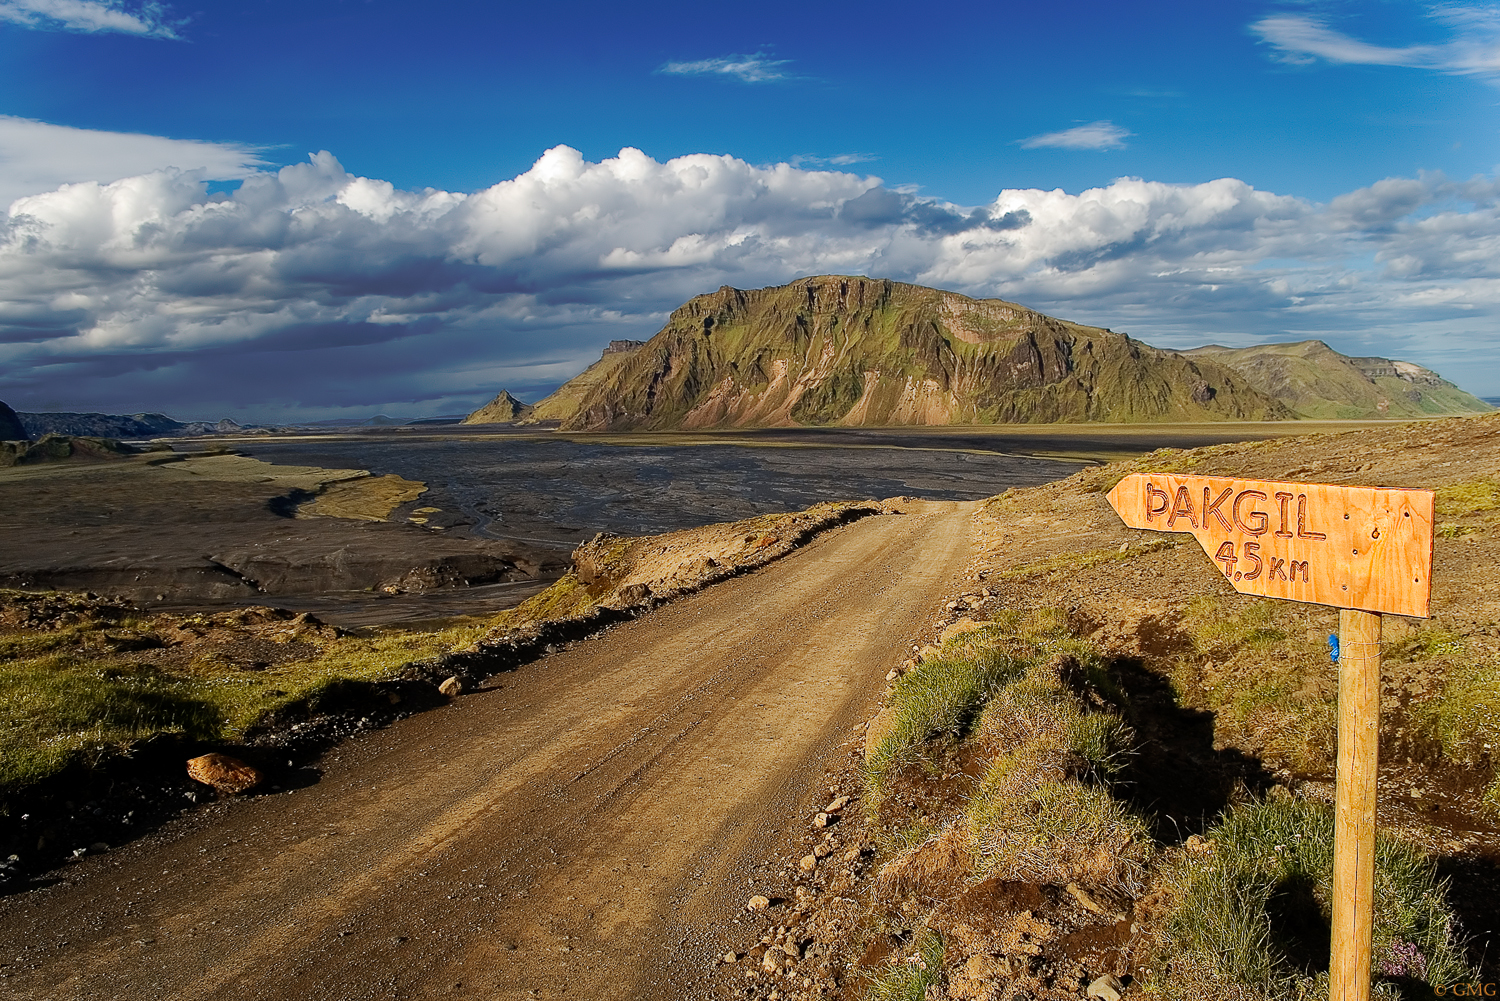 Road to Thakgil, Iceland